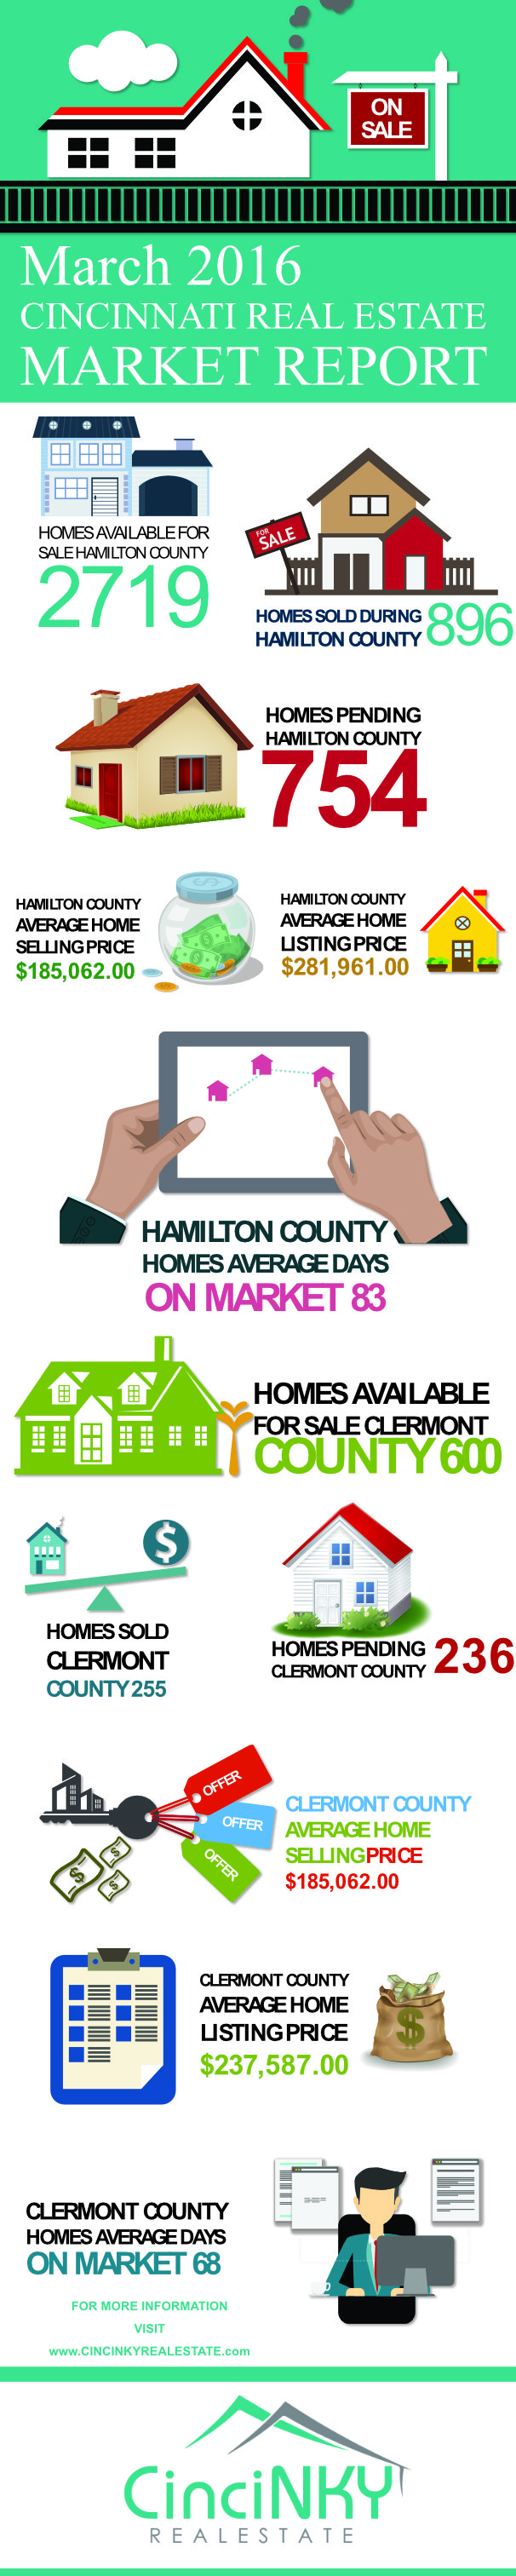 march 2016 great cincinnati real estate market report infographic